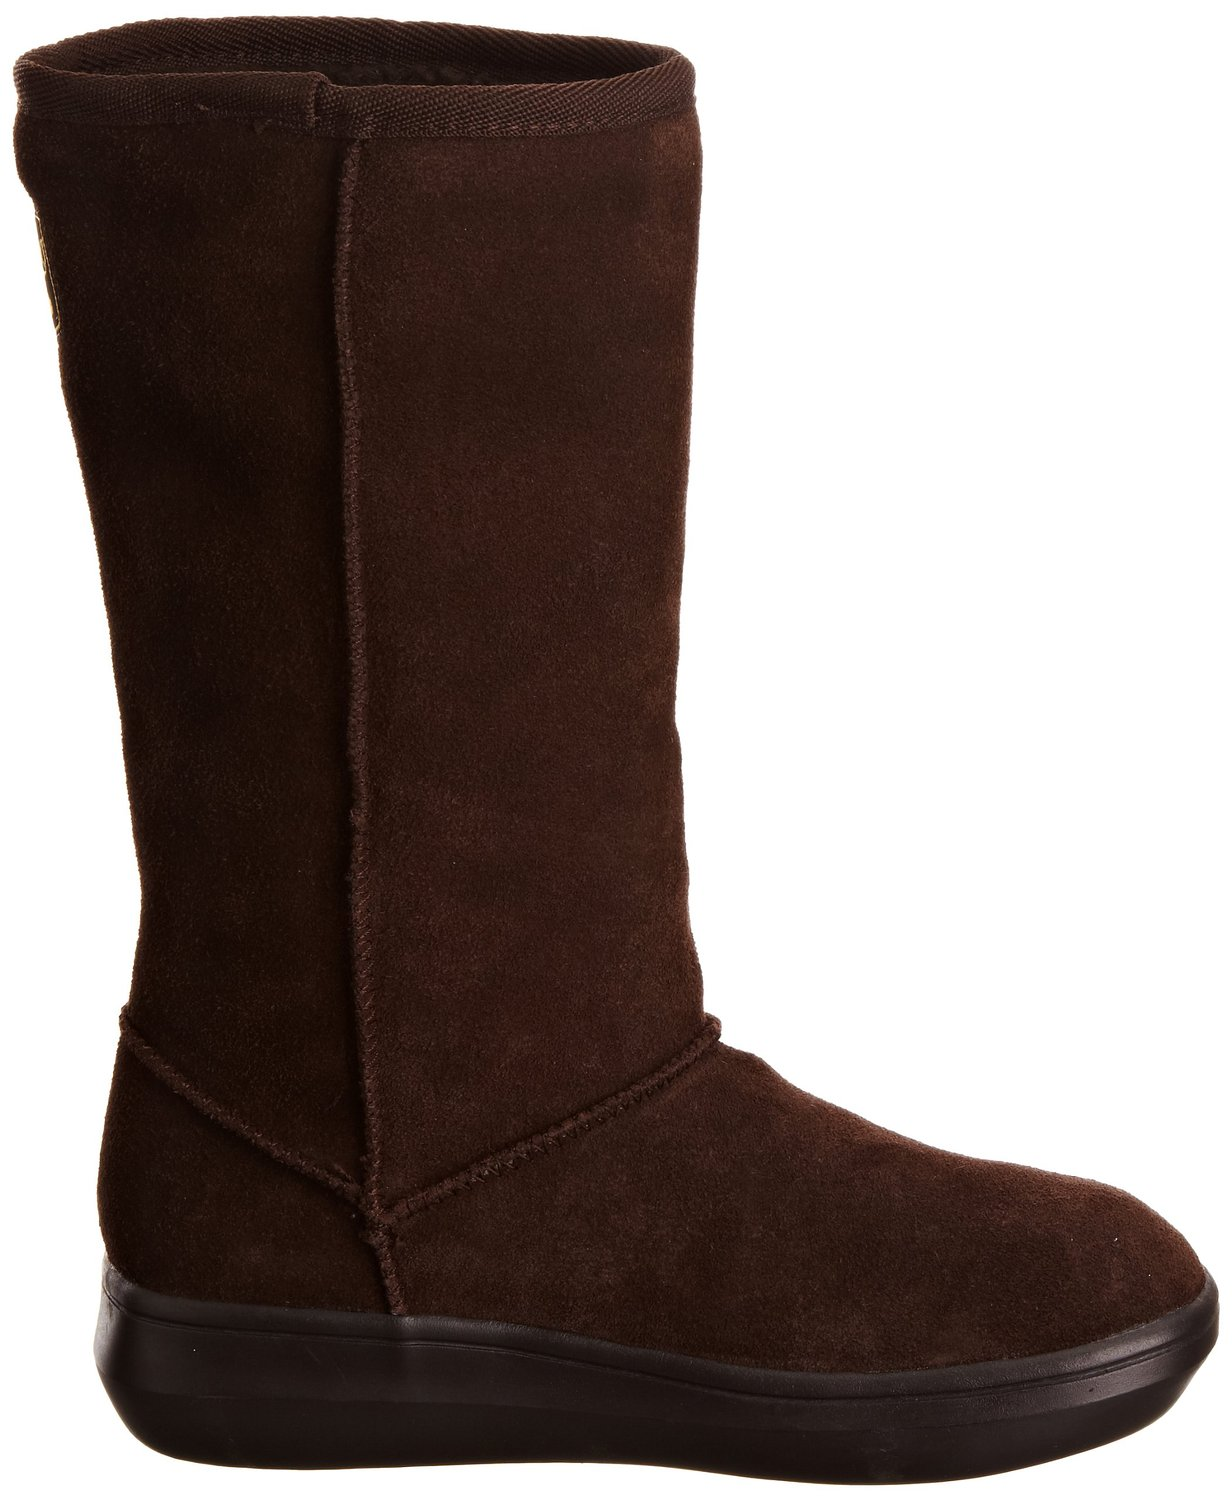 new rocket sugar suede leather boots